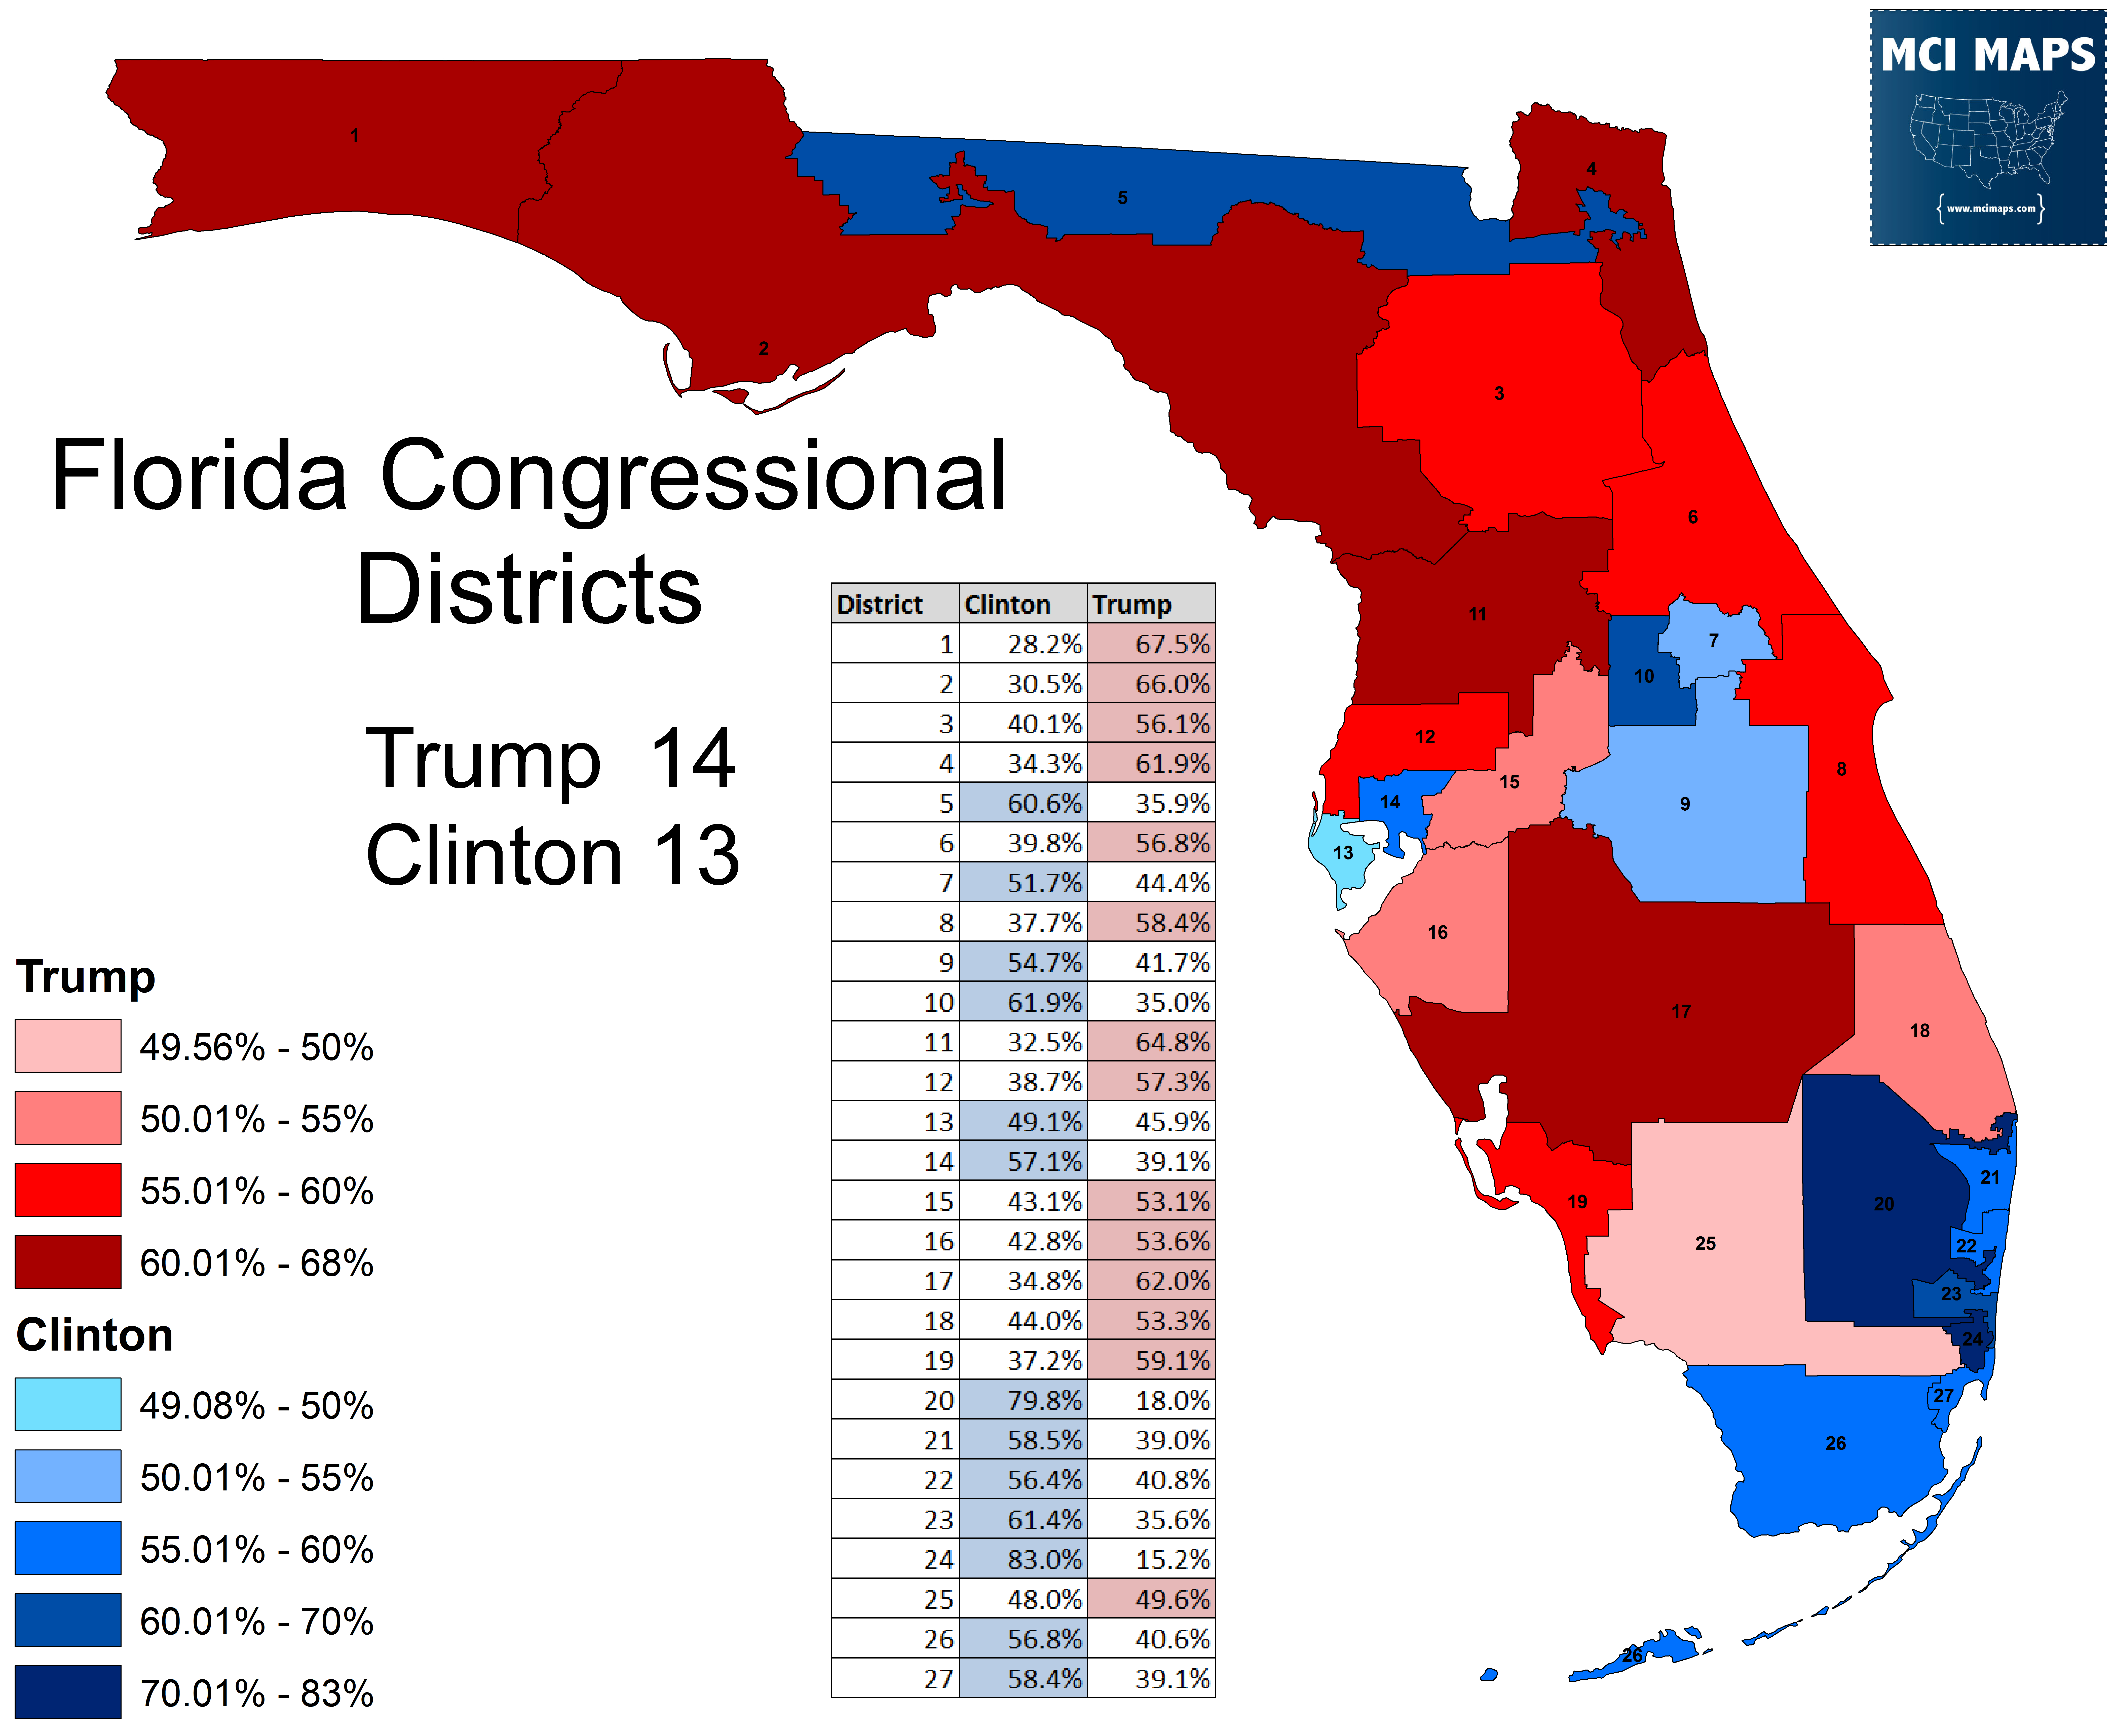 Florida's Congressional District Rankings For 2018 – Mci Maps - Florida House Of Representatives District Map